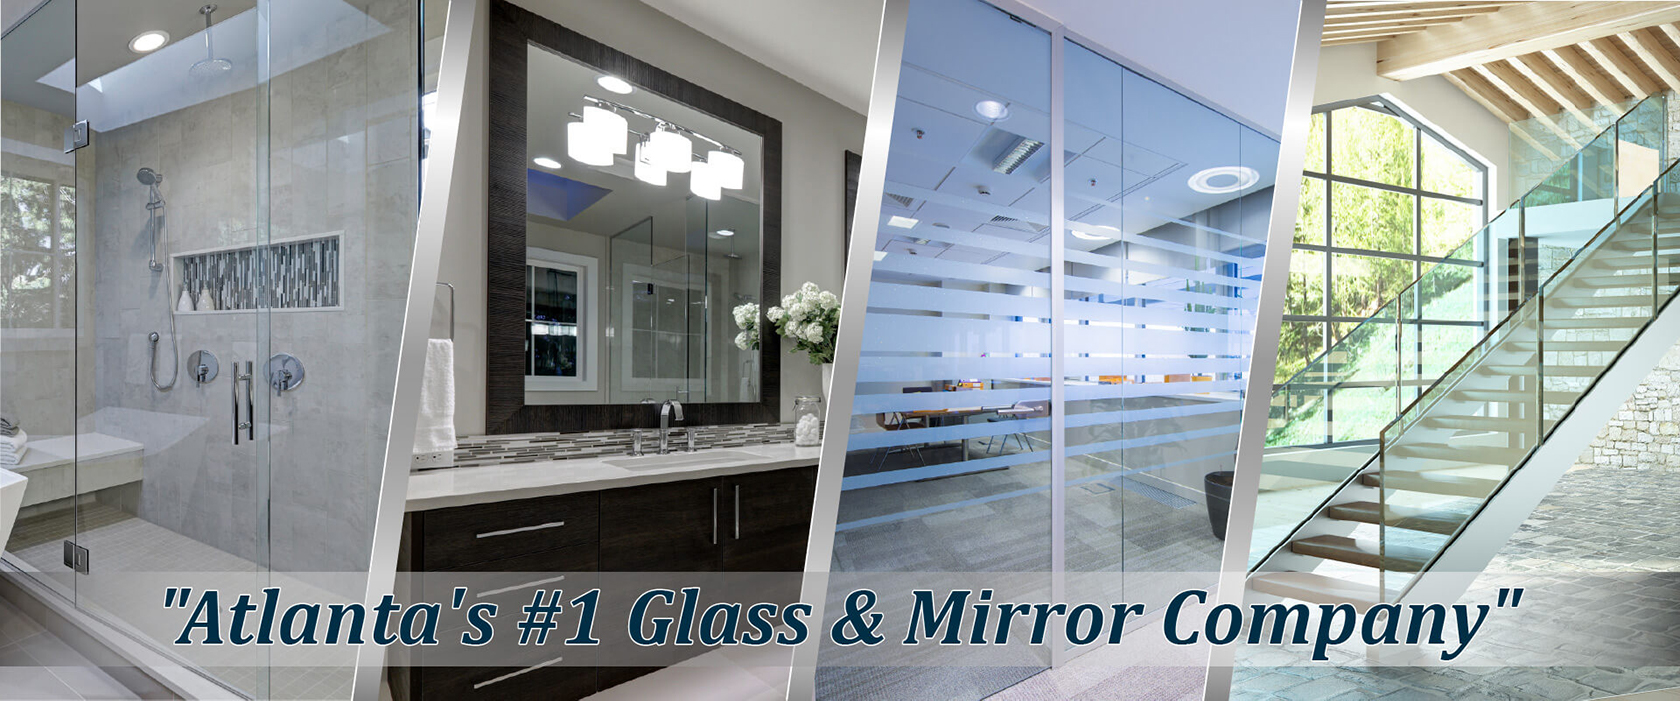 Glass Mirrors Duluth Georgia Shower Enclosures Store Fronts